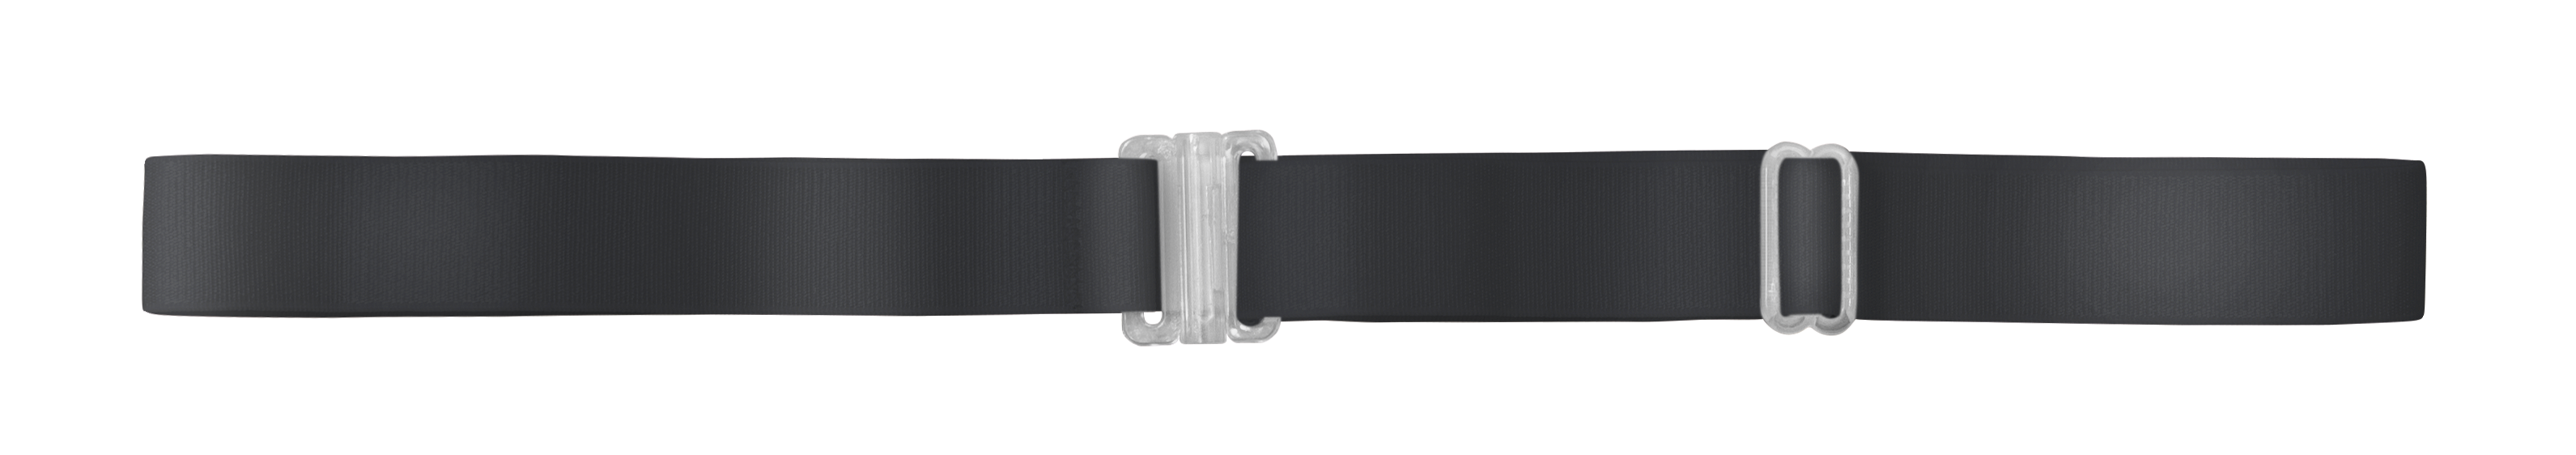 "3/4"" Adjustable Belt"